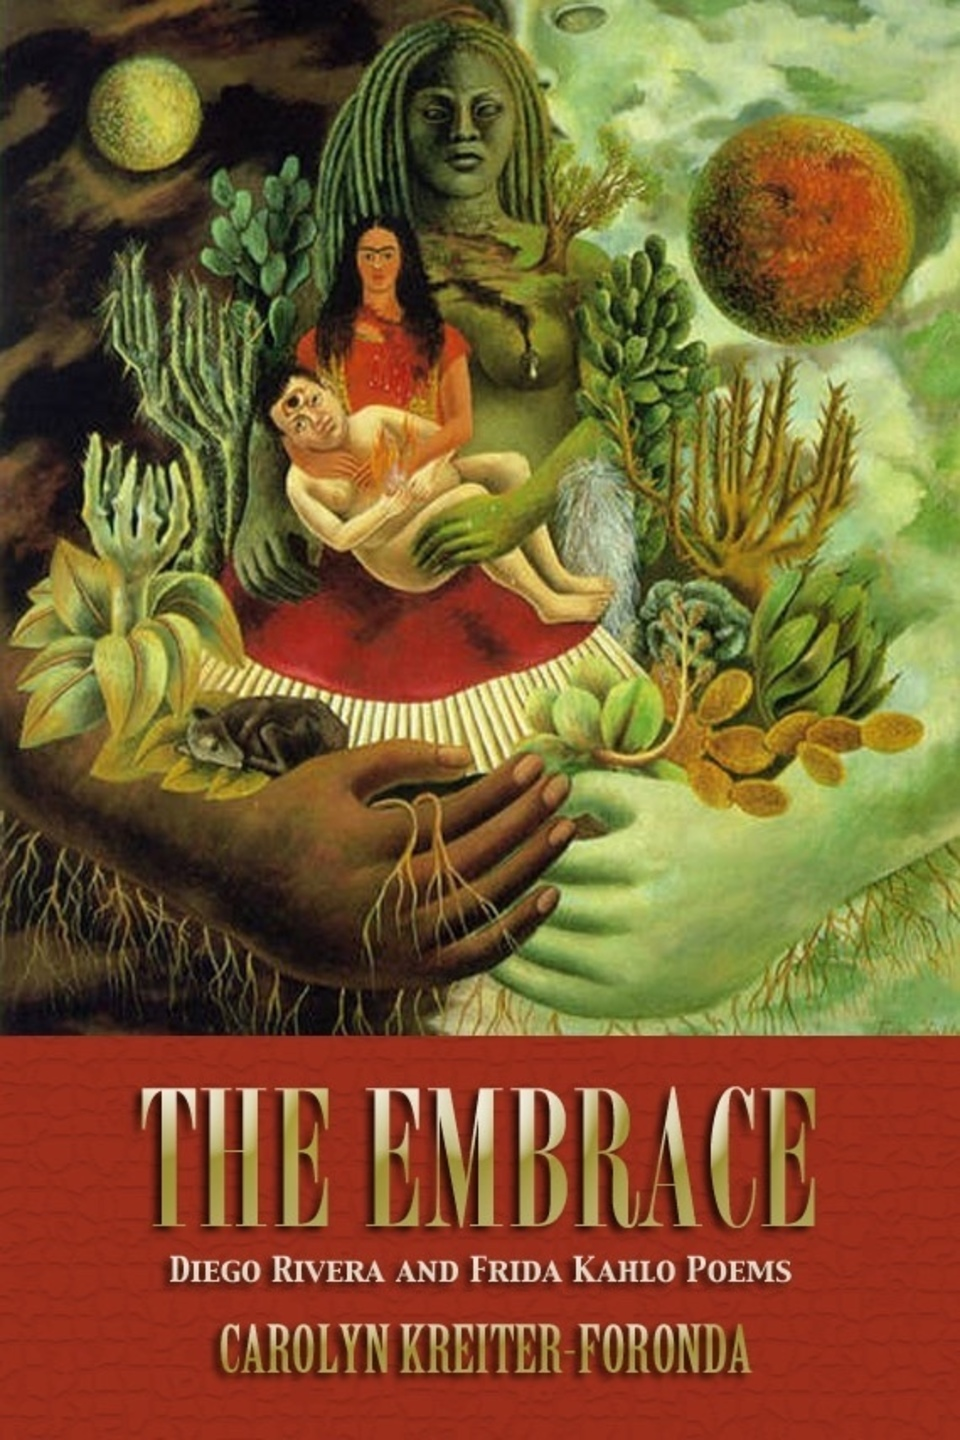 The embrace cover20160713 15578 1gn6qn4